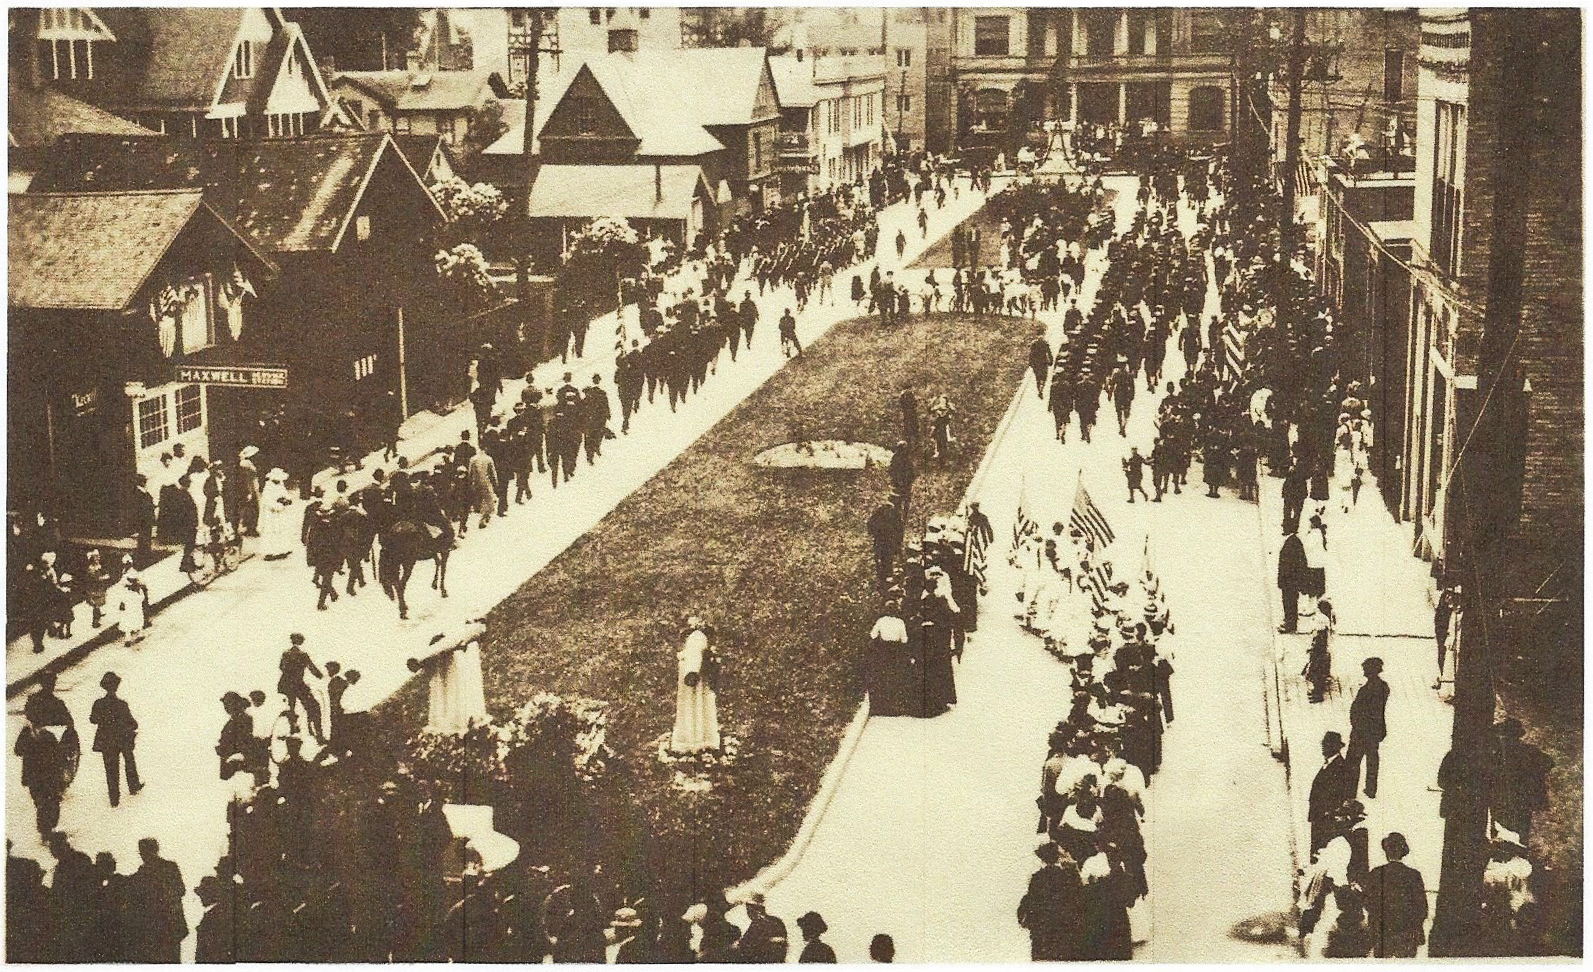 Civil War Memorial dedication event in 1911